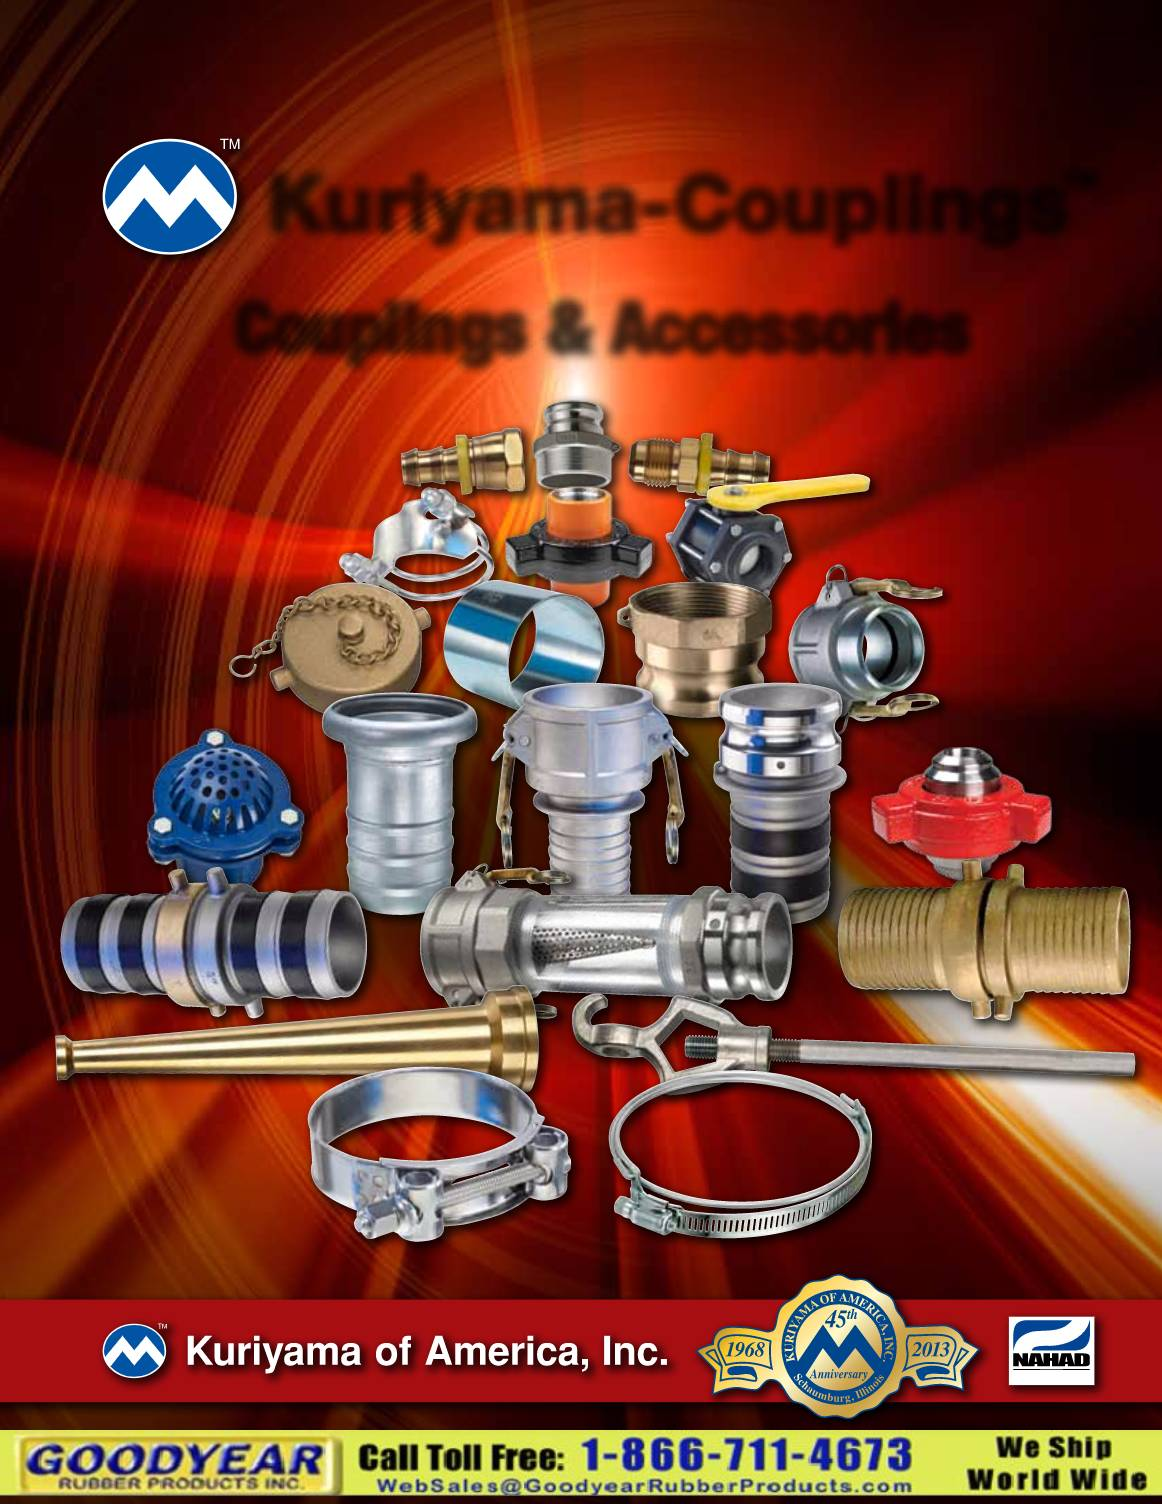 Kuriyama Couplings 2013 Catalog